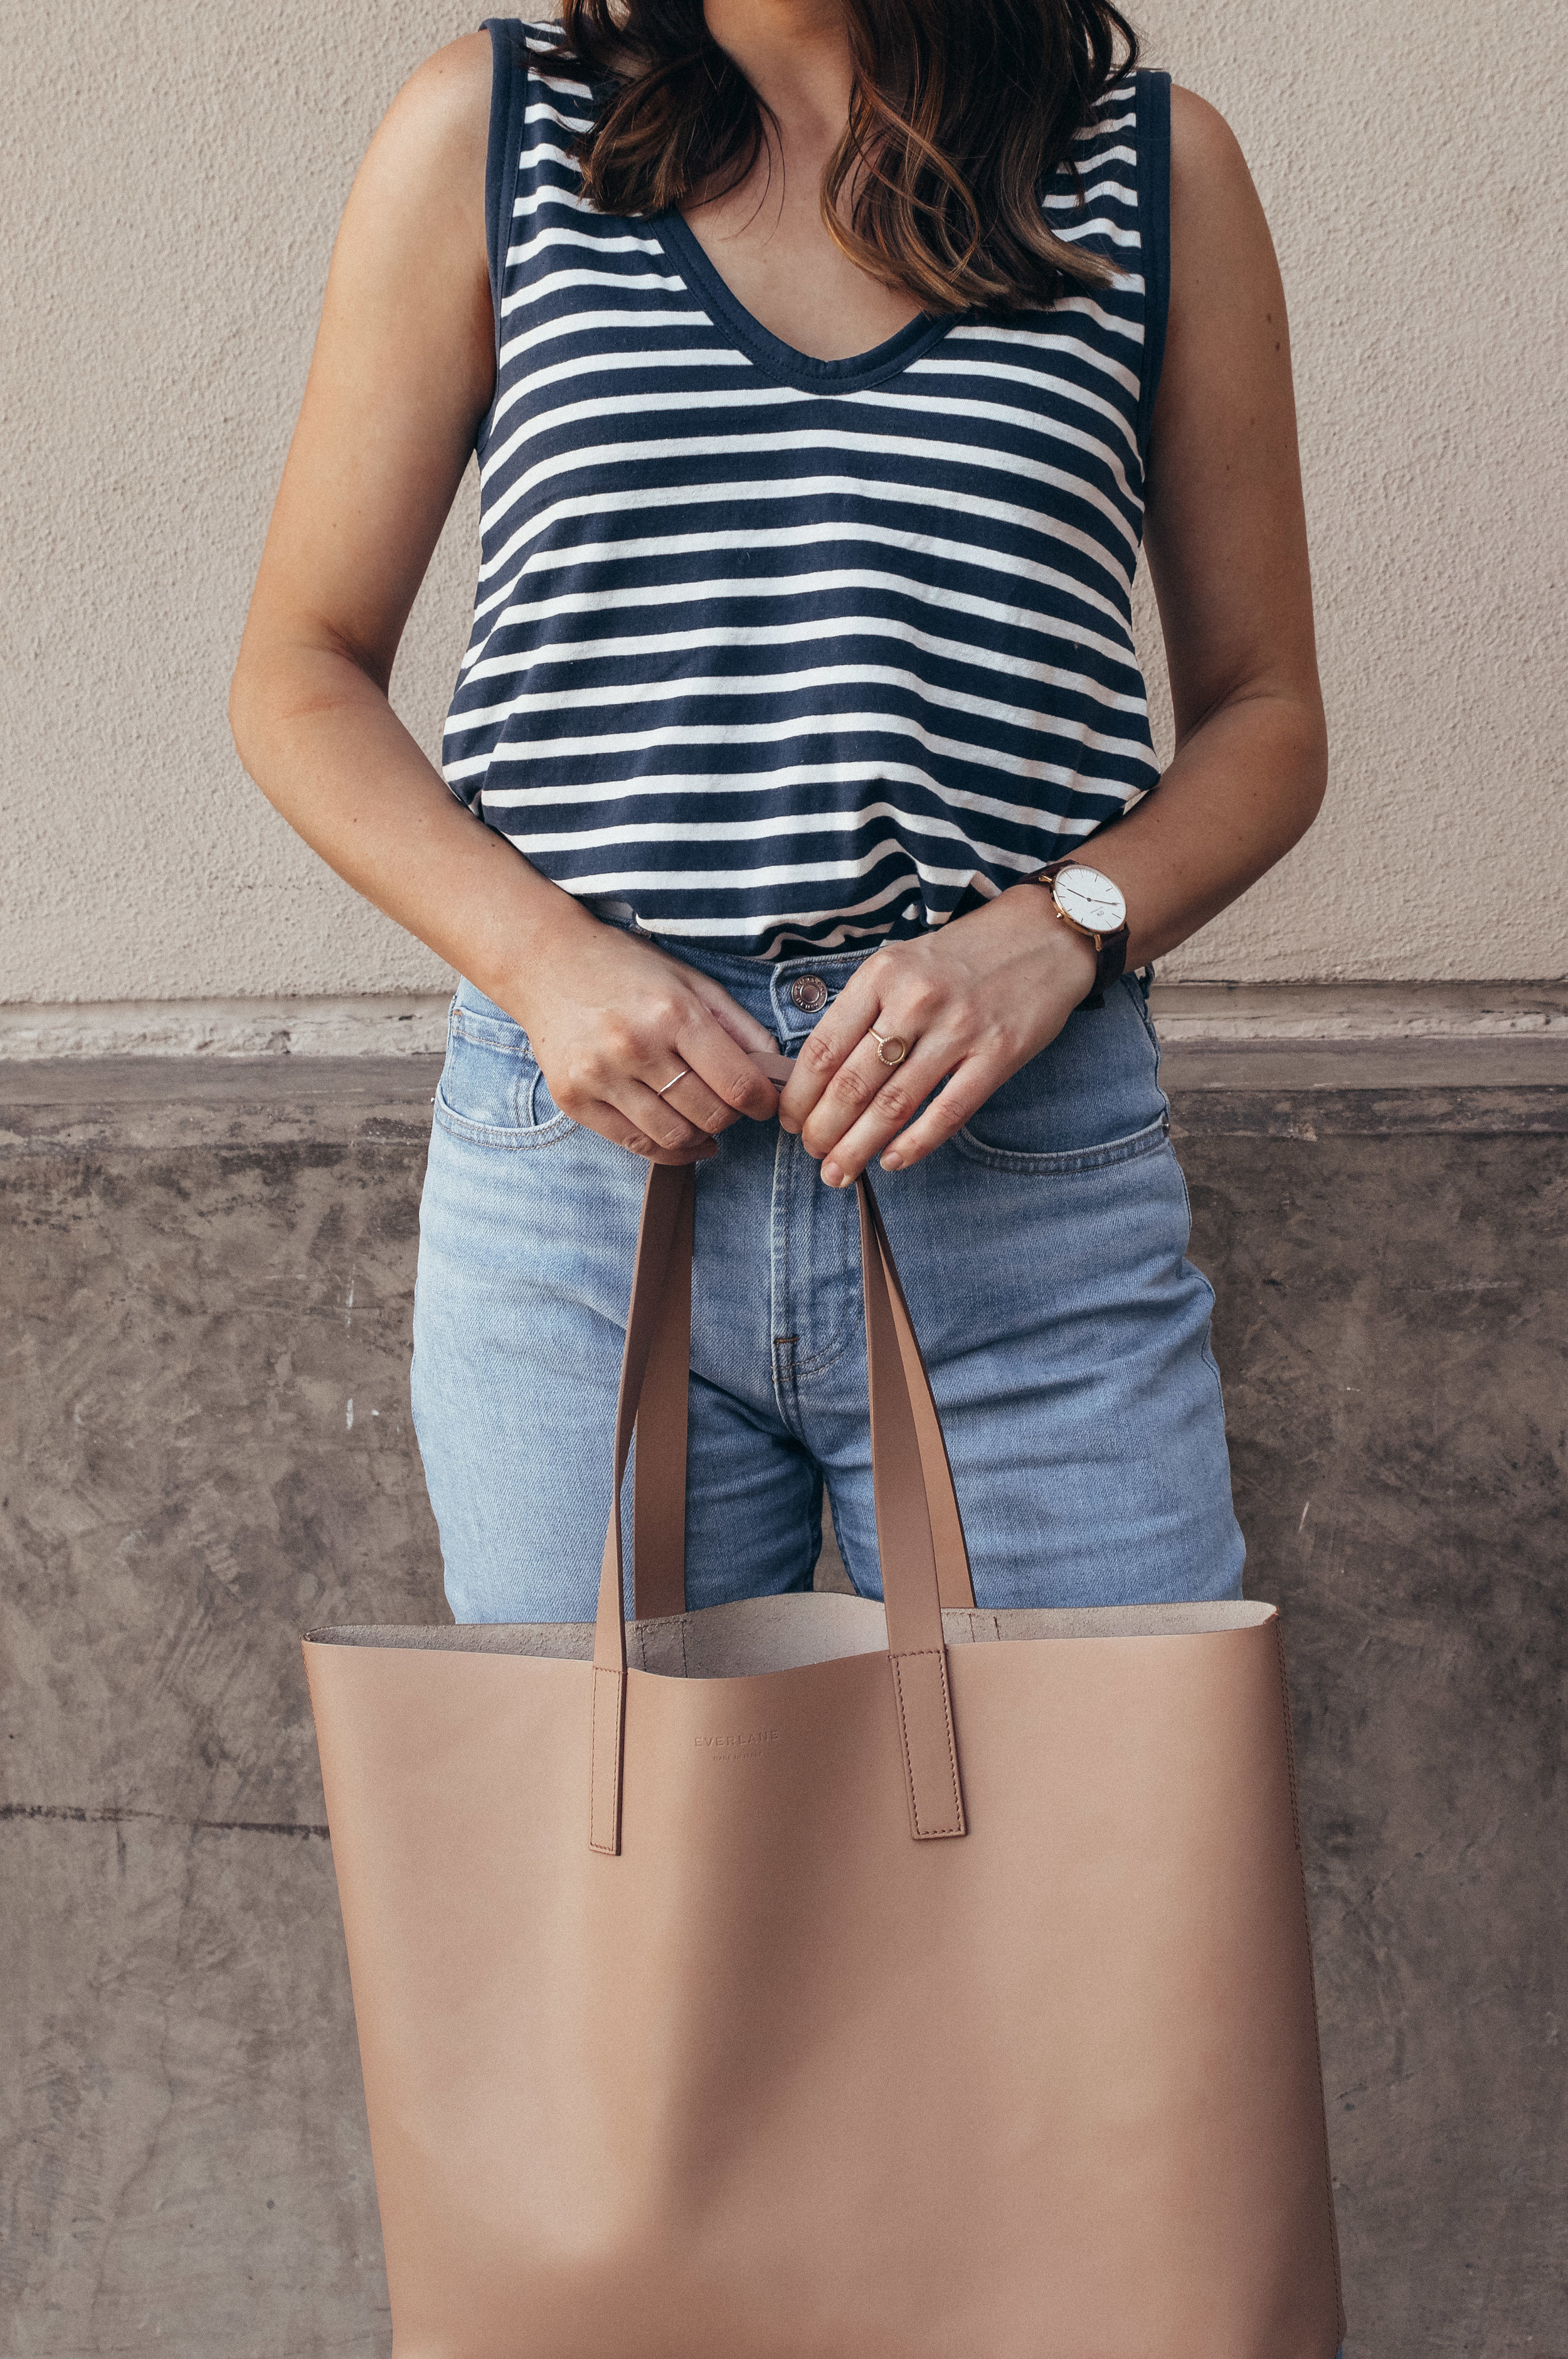 striped tank and jeans